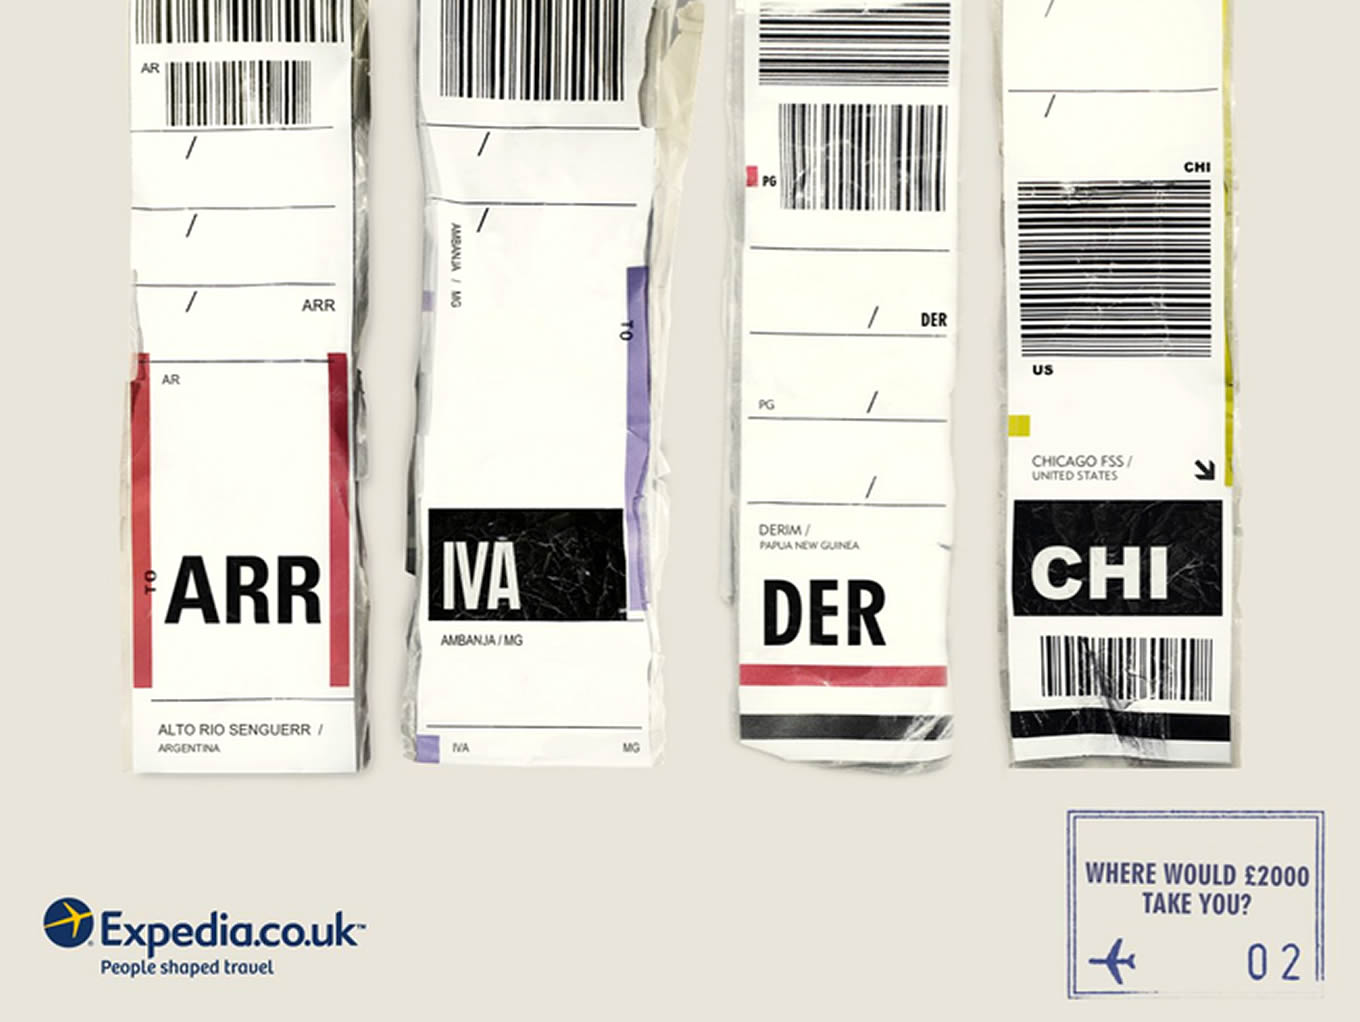 Winner Destinatiion Airport Code, Luggage Tags Marketing Campaign by Expedia UK